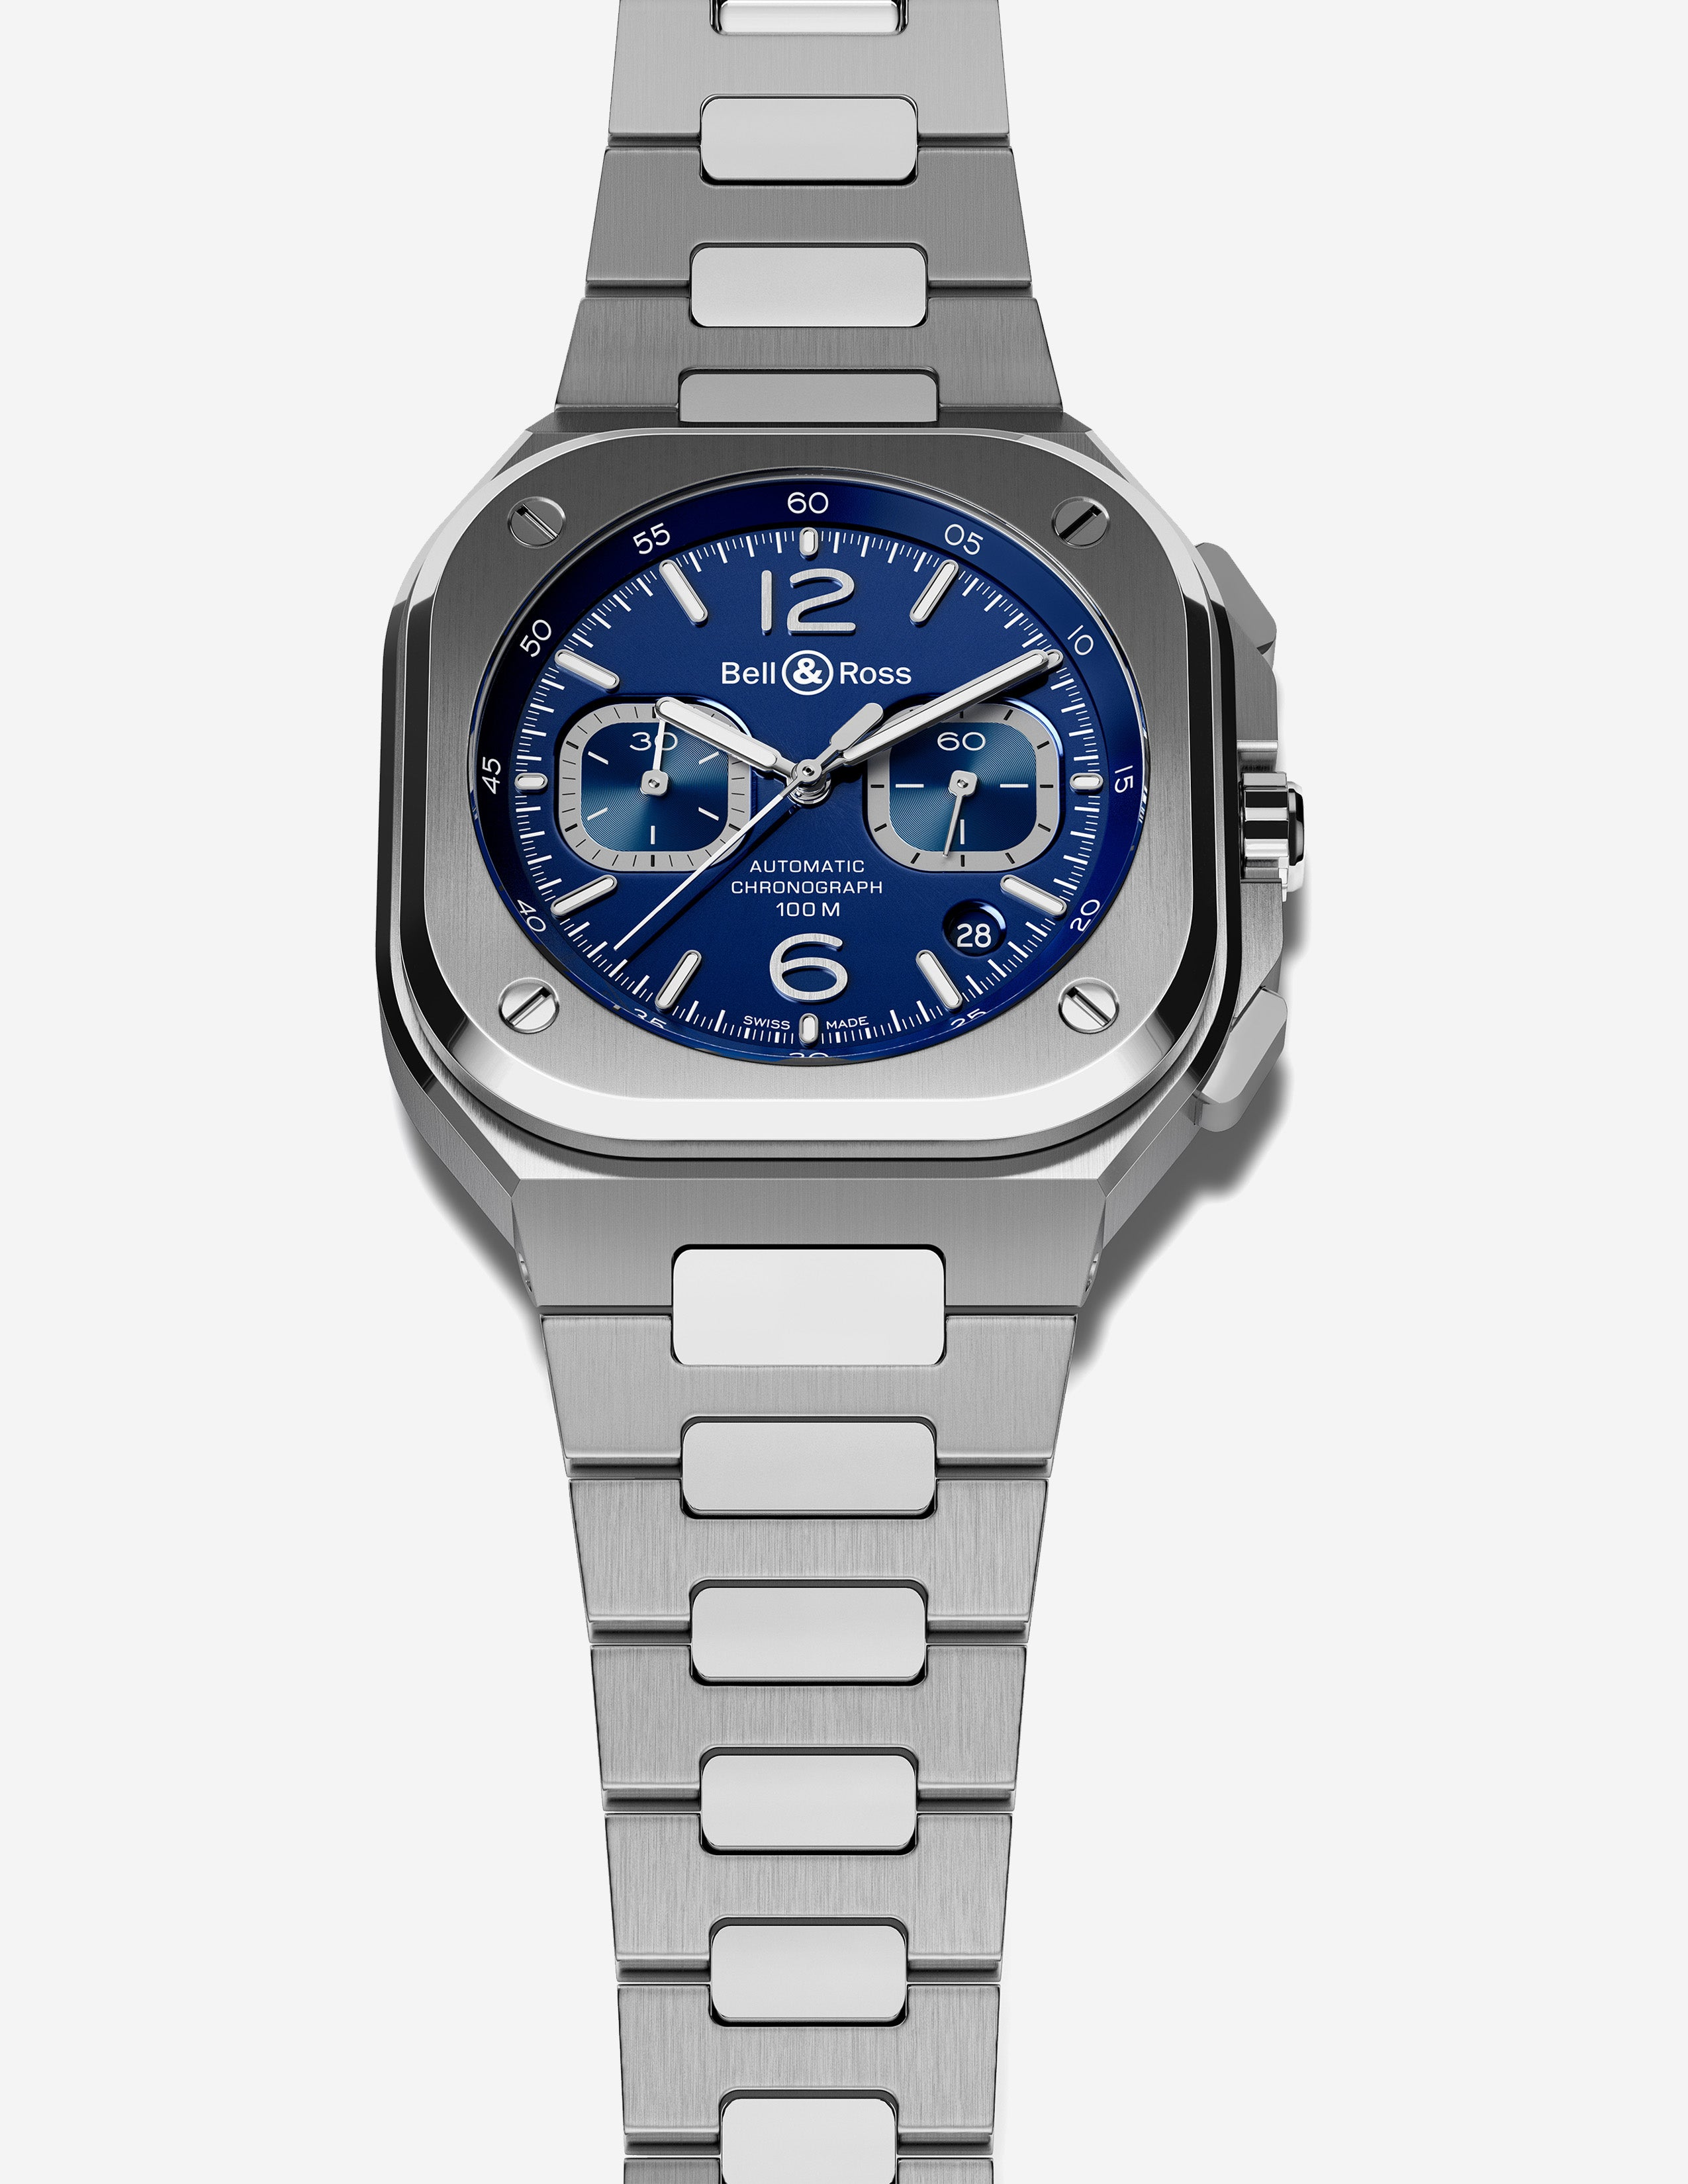 Bell & Ross BR 05 chronograph stainless steel integrated bracelet sports watch with a blue dial for A Collected Man London